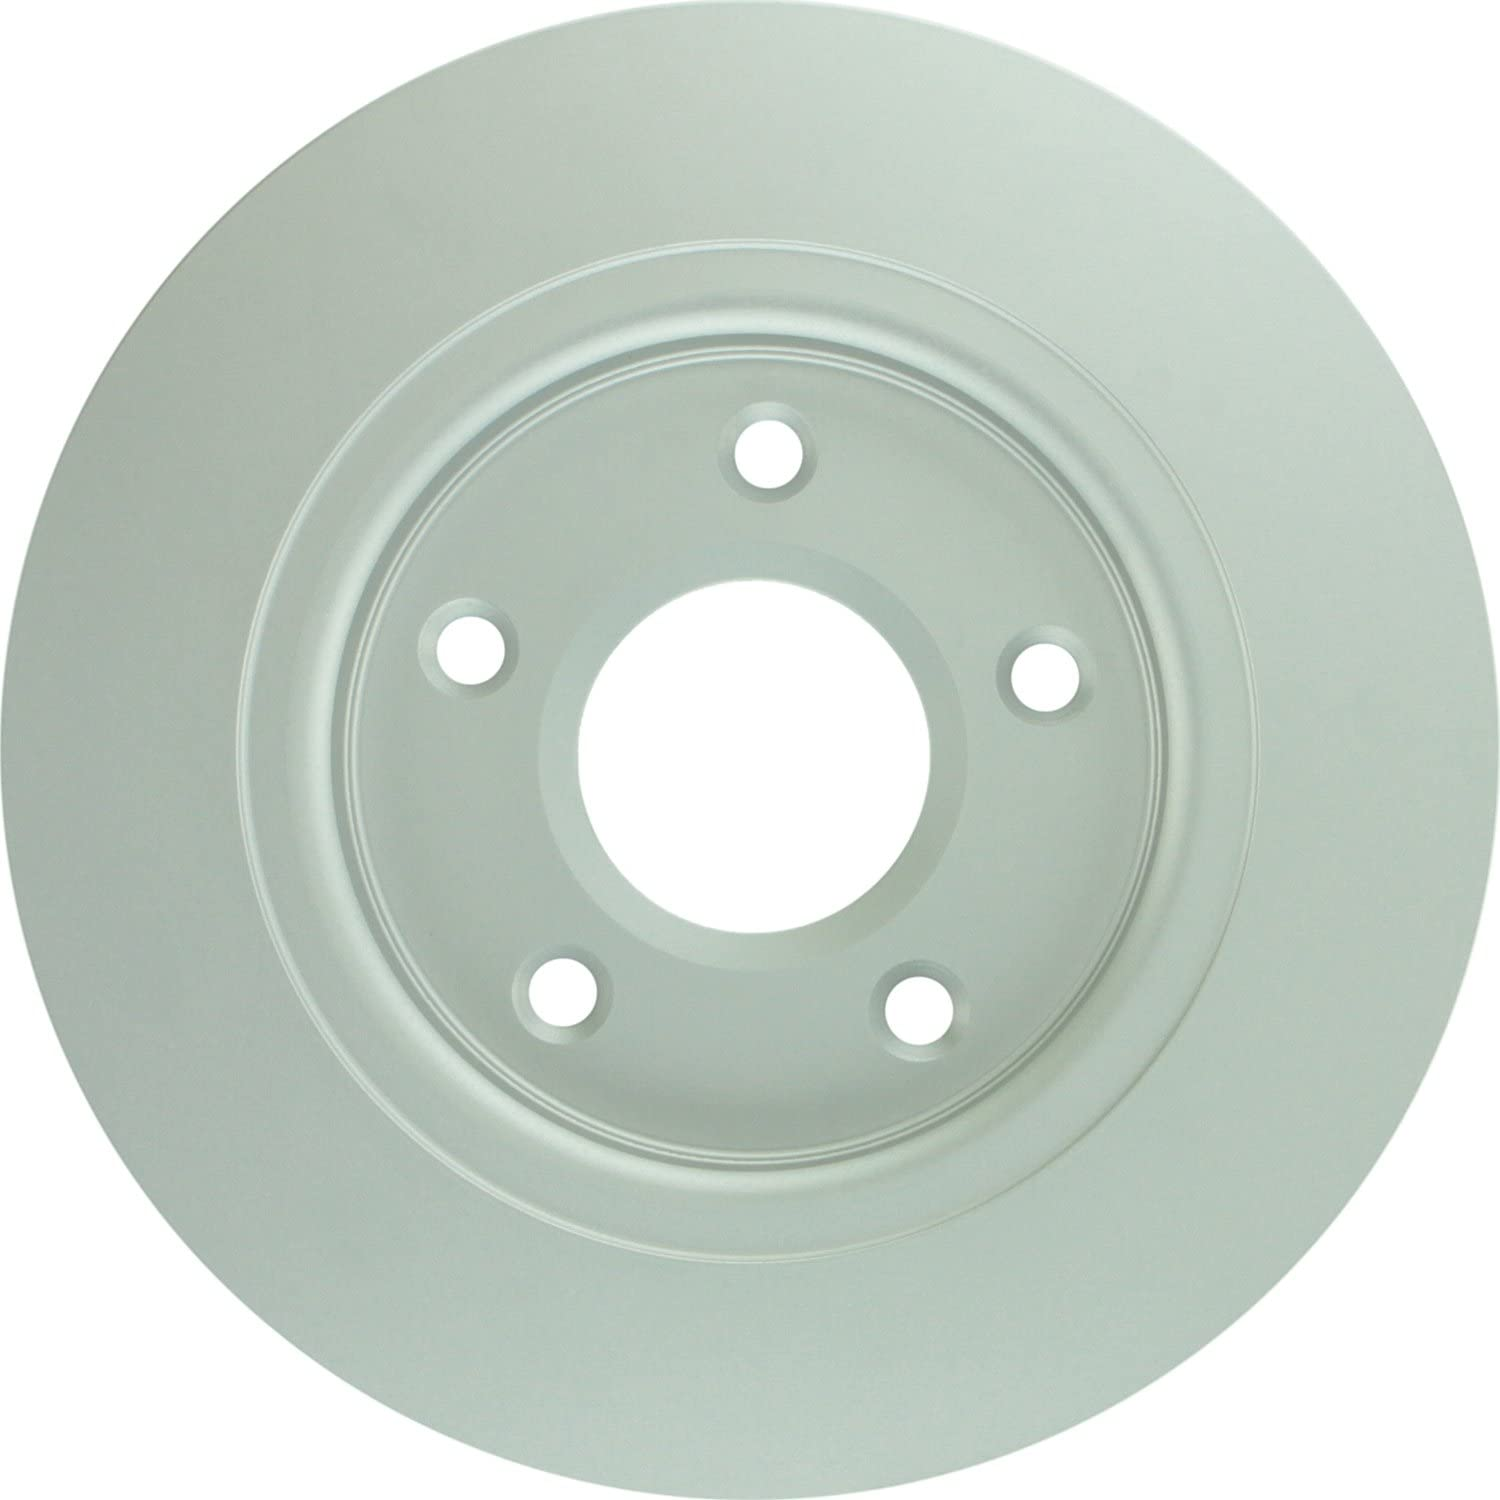 Brake Pads Include Hardware Front Disc Brake Rotors and Ceramic Brake Pads for 2008 Dodge Grand Caravan With Two Years Manufacturer Warranty